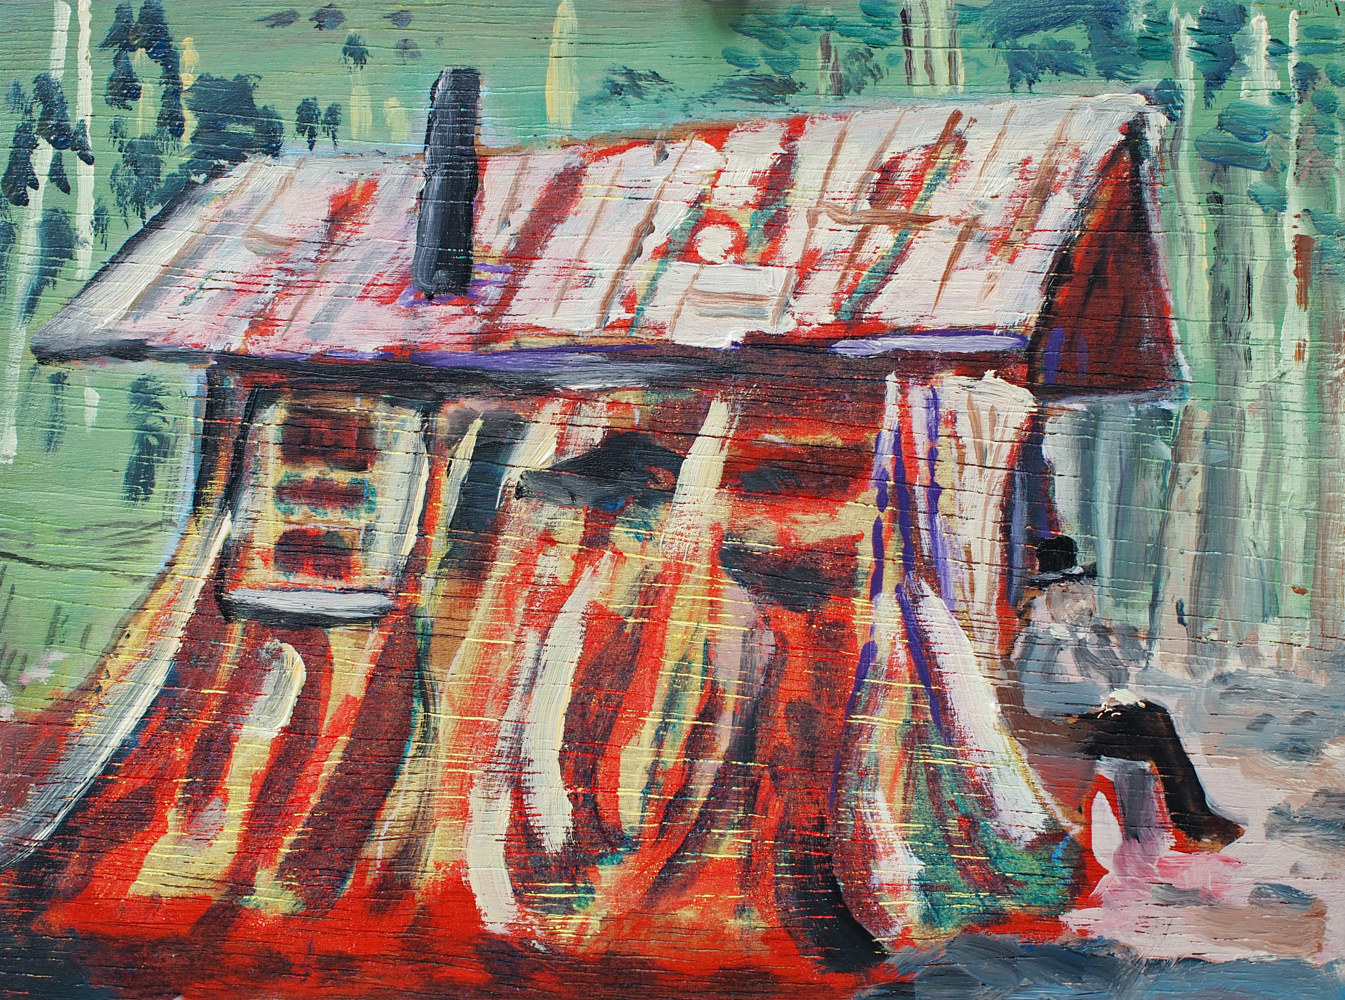 Oil painting Cear Stump House III by Dennis Worrel